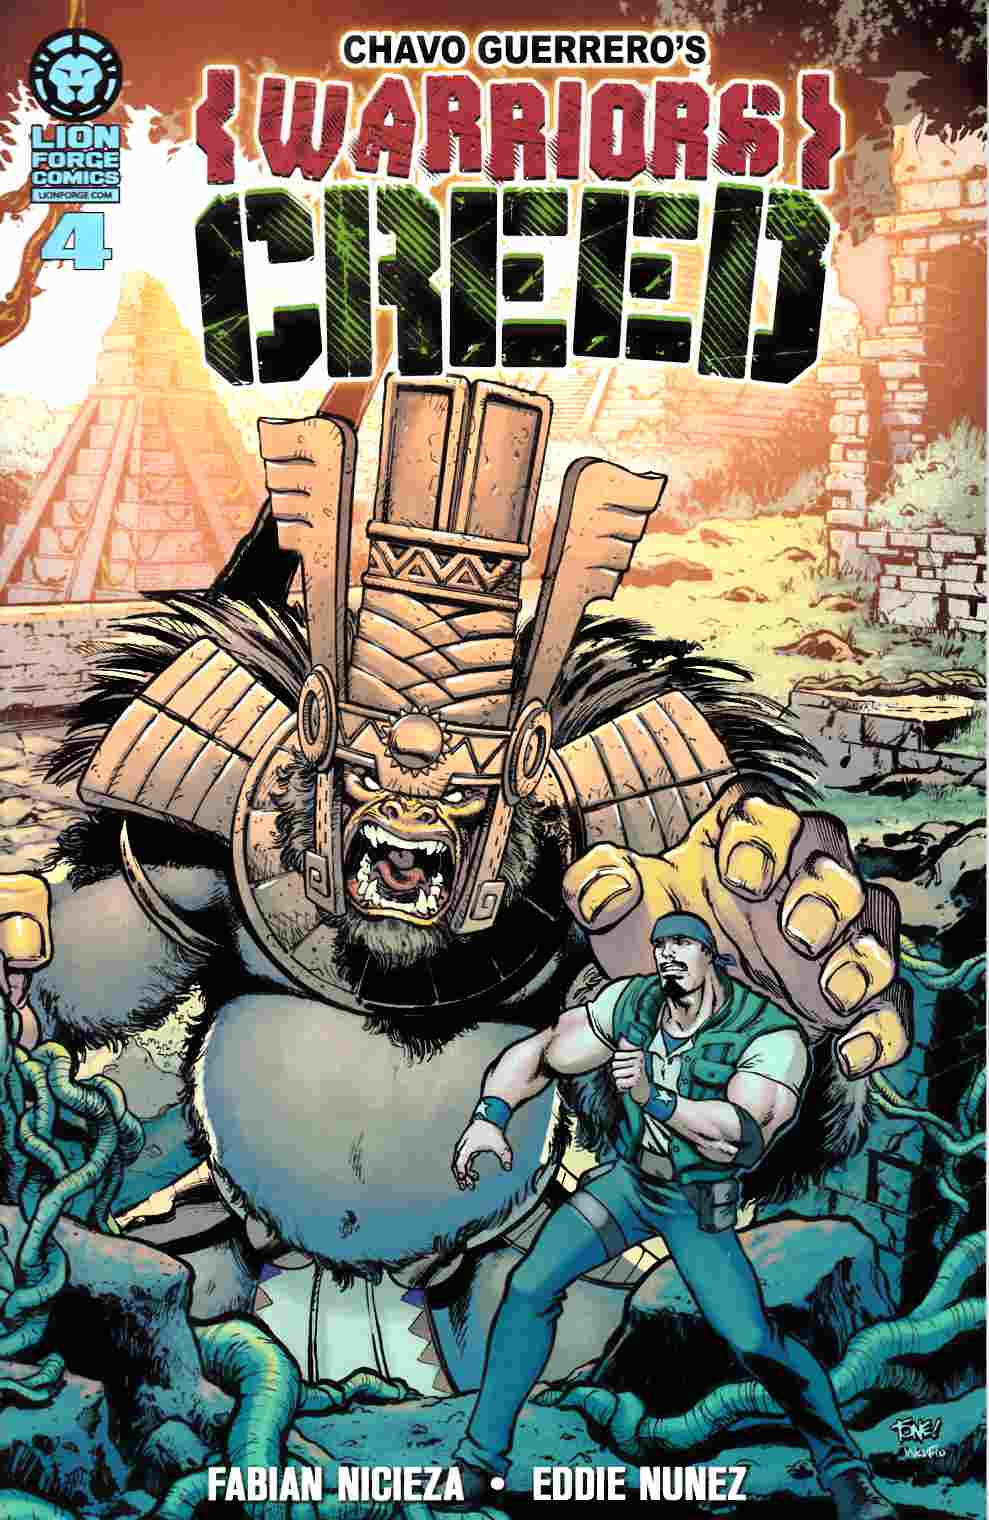 Chavo Guerreros Warriors Creed #4 [Lion Forge Comic] LARGE